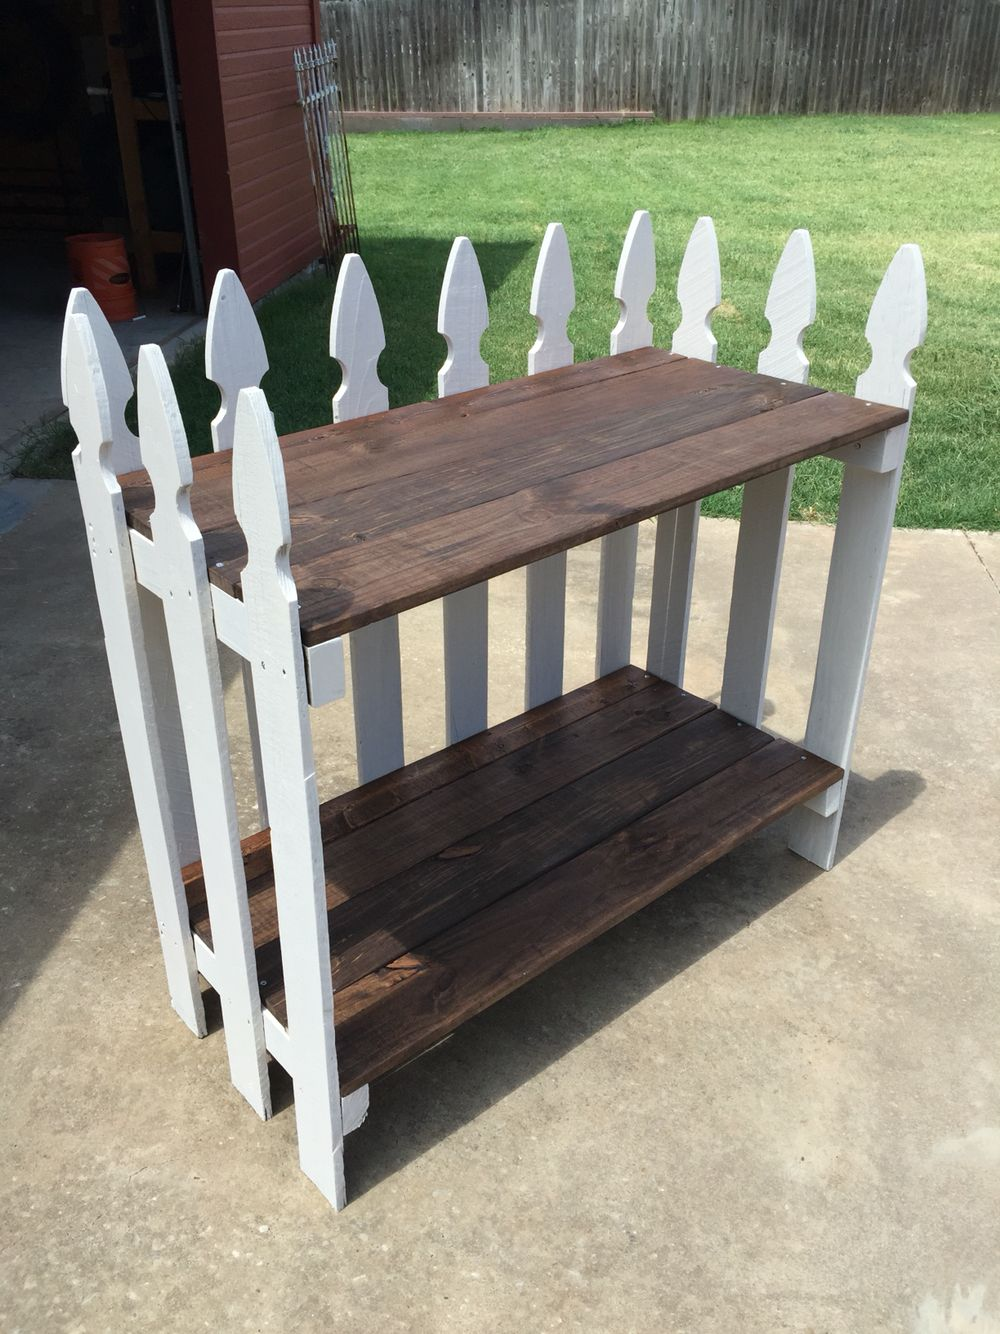 Used Old Fence Pickets To Make A Console Table Woodworking Projects Gifts Woodworking Crafts Awesome Woodworking Ideas